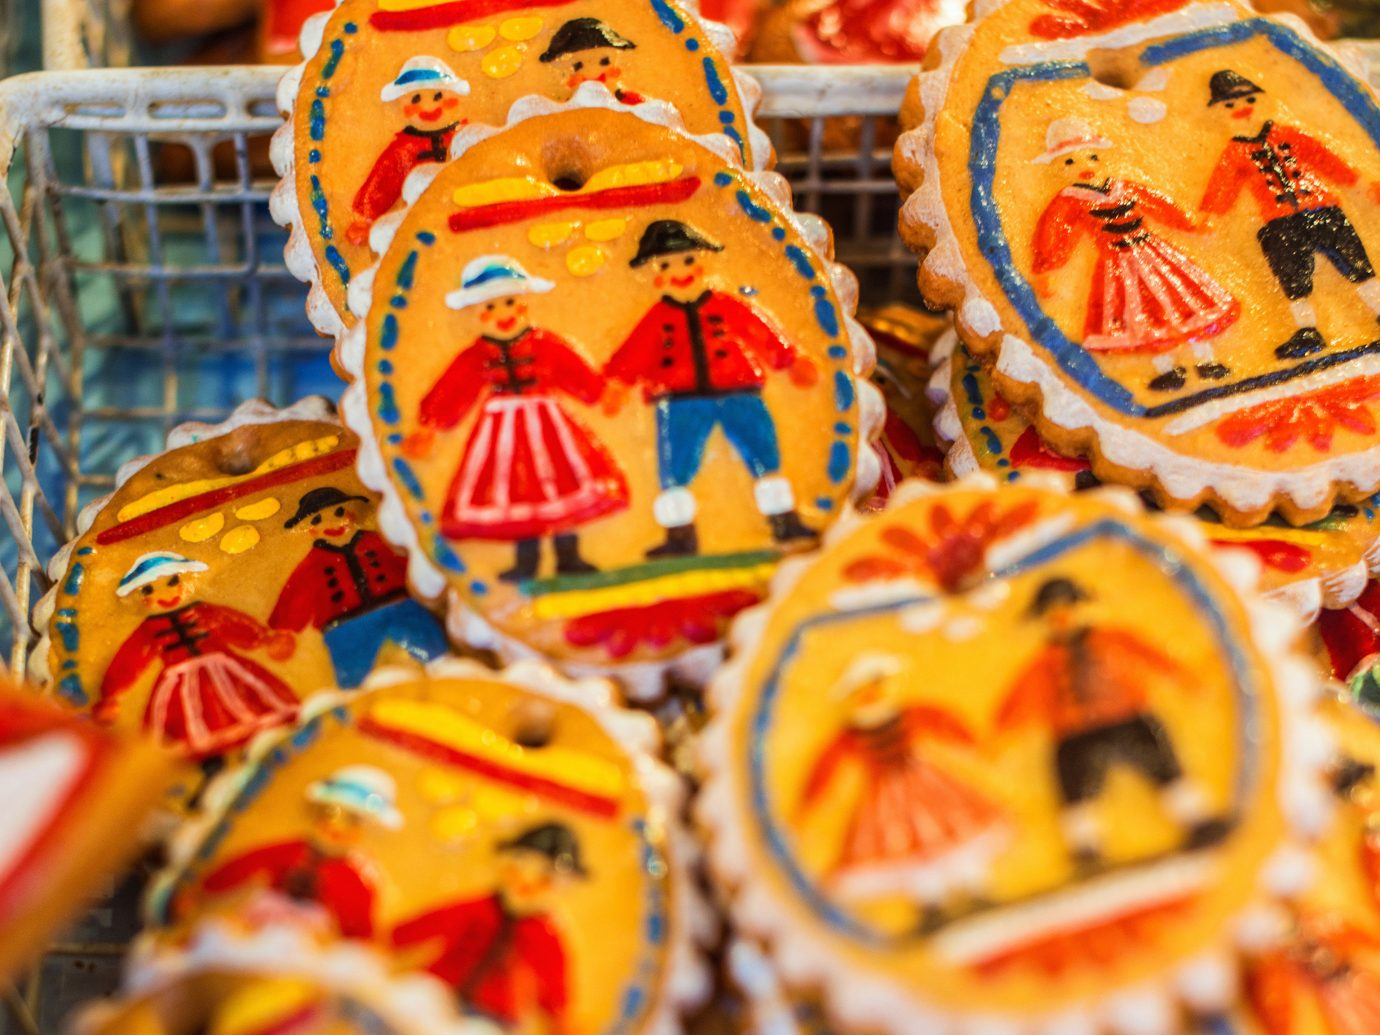 Trip Ideas food sweet colorful dessert sweetness produce chinese new year decorated colored